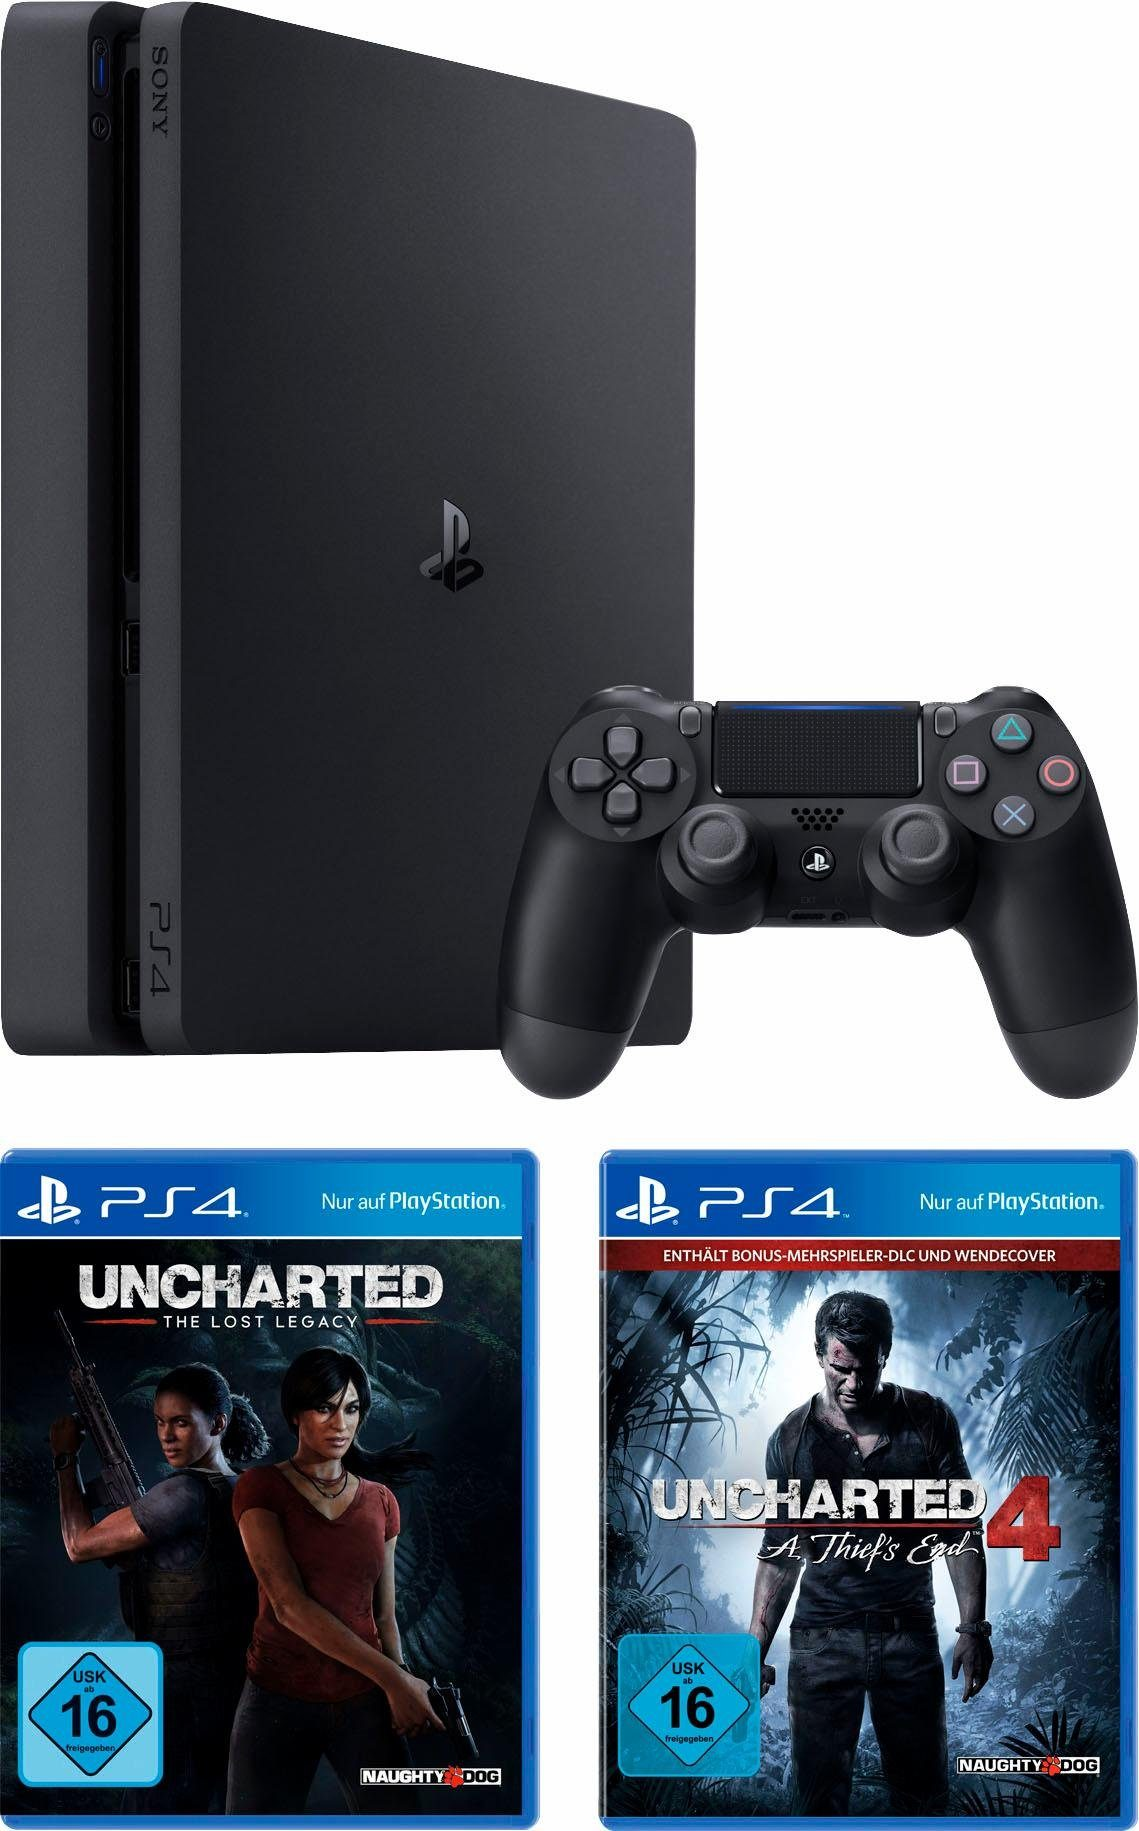 PlayStation 4 (PS4) 1TB + Uncharted Lost Legacy + Uncharted 4 Plus Edition